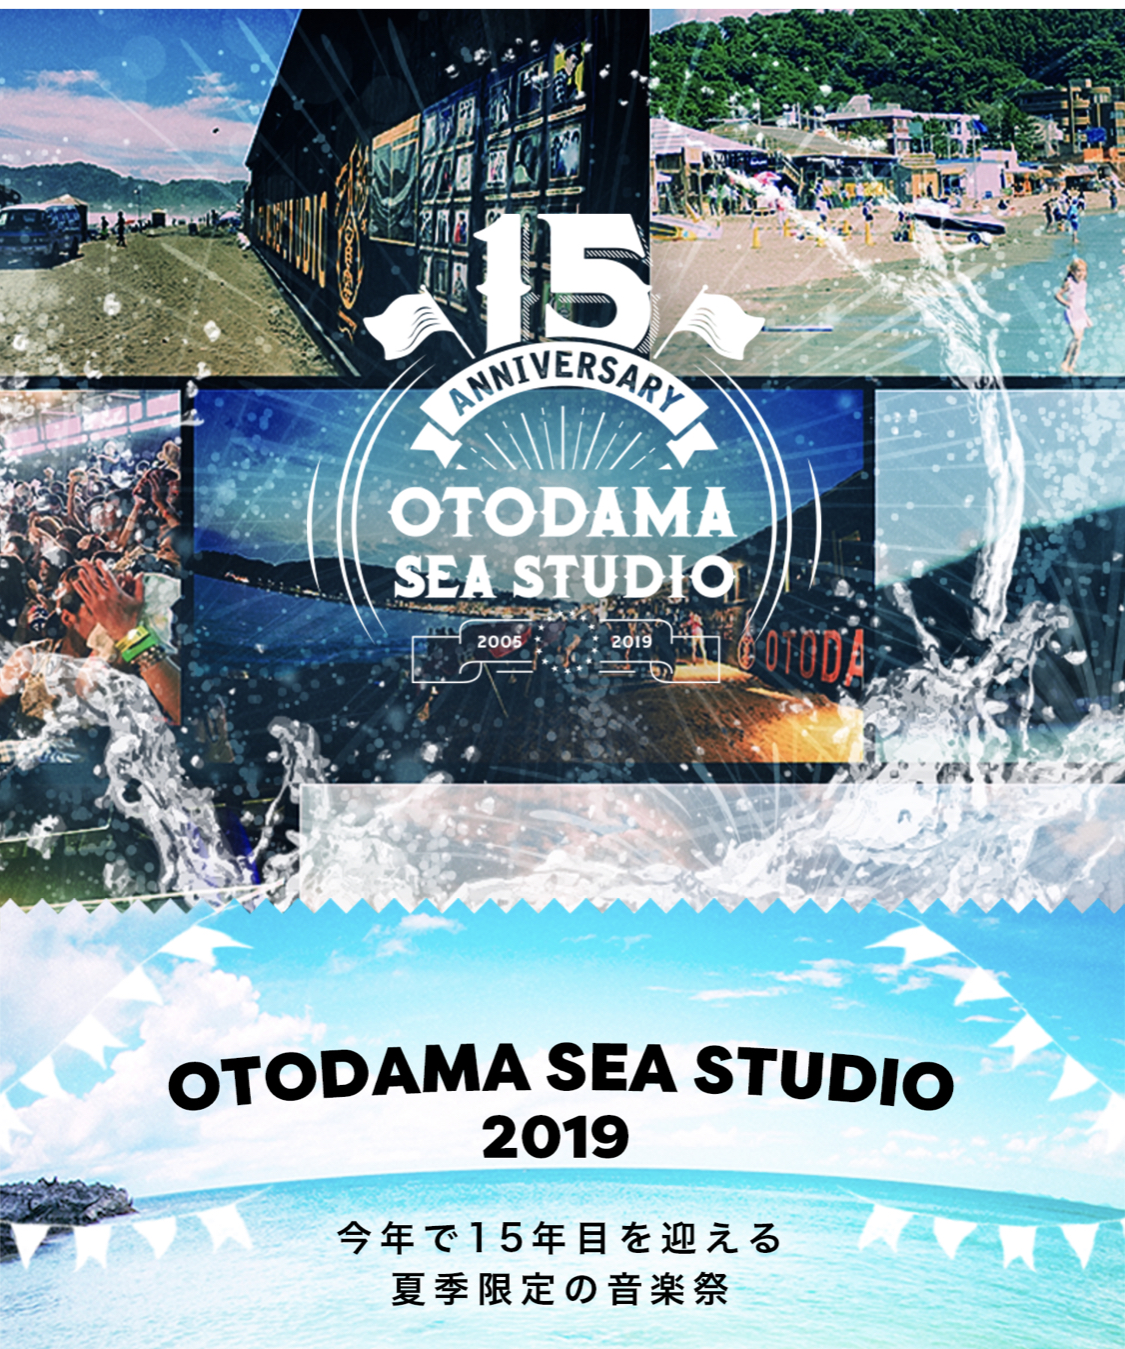 OTODAMA SEA STUDIO 2019 supported by POCARI SWEAT